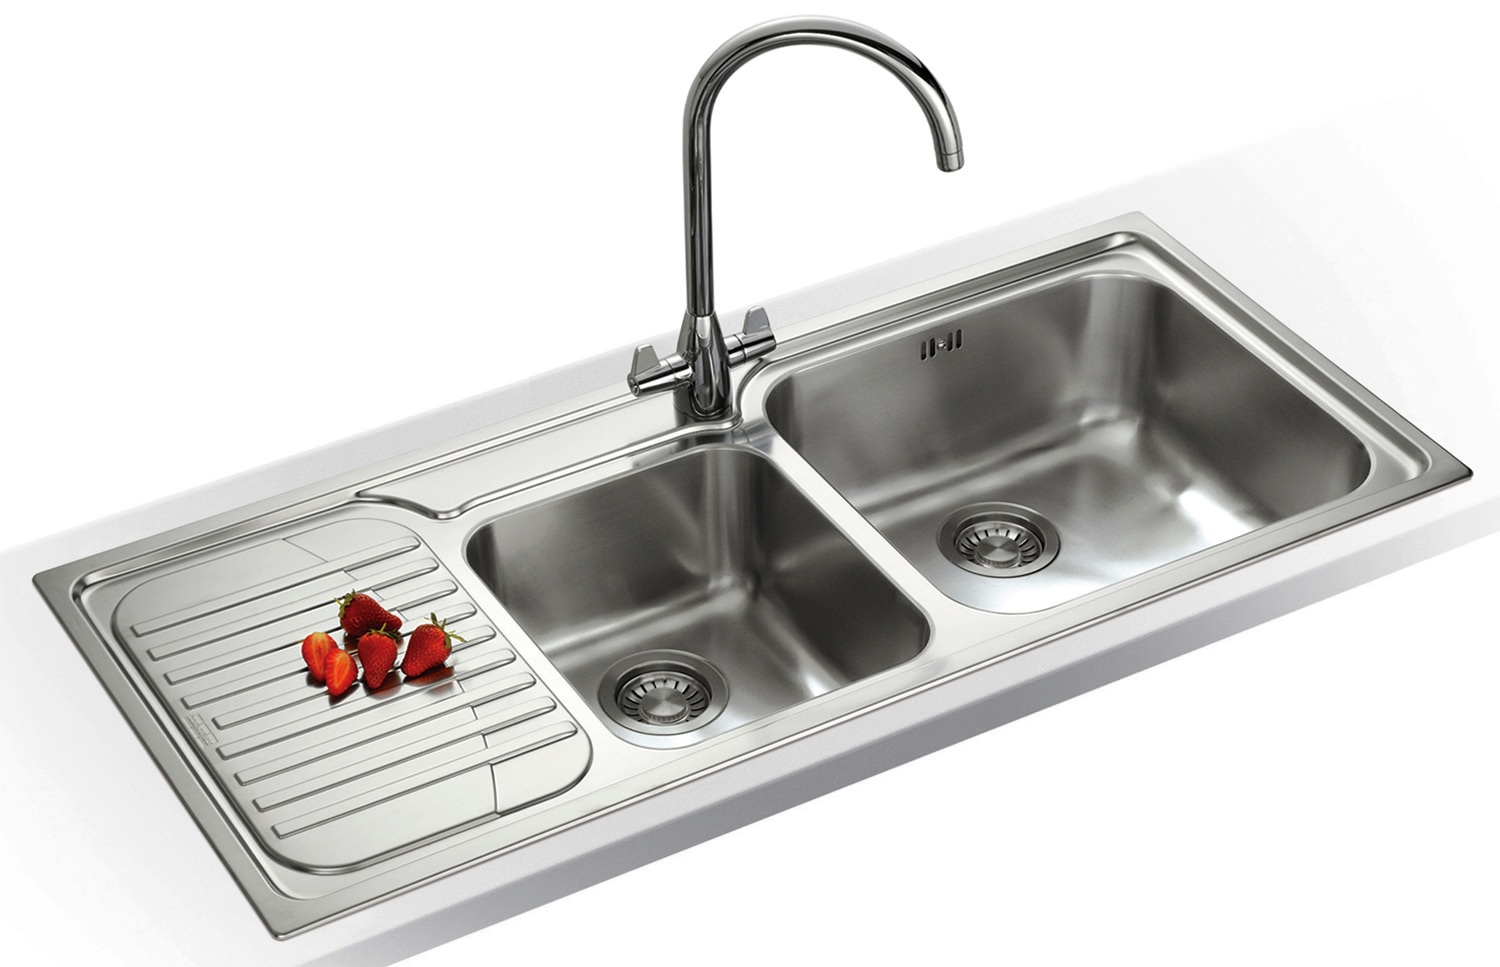 ... of Franke Galassia GAX 621 1.5 Bowl Stainless Steel Kitchen Inset Sink